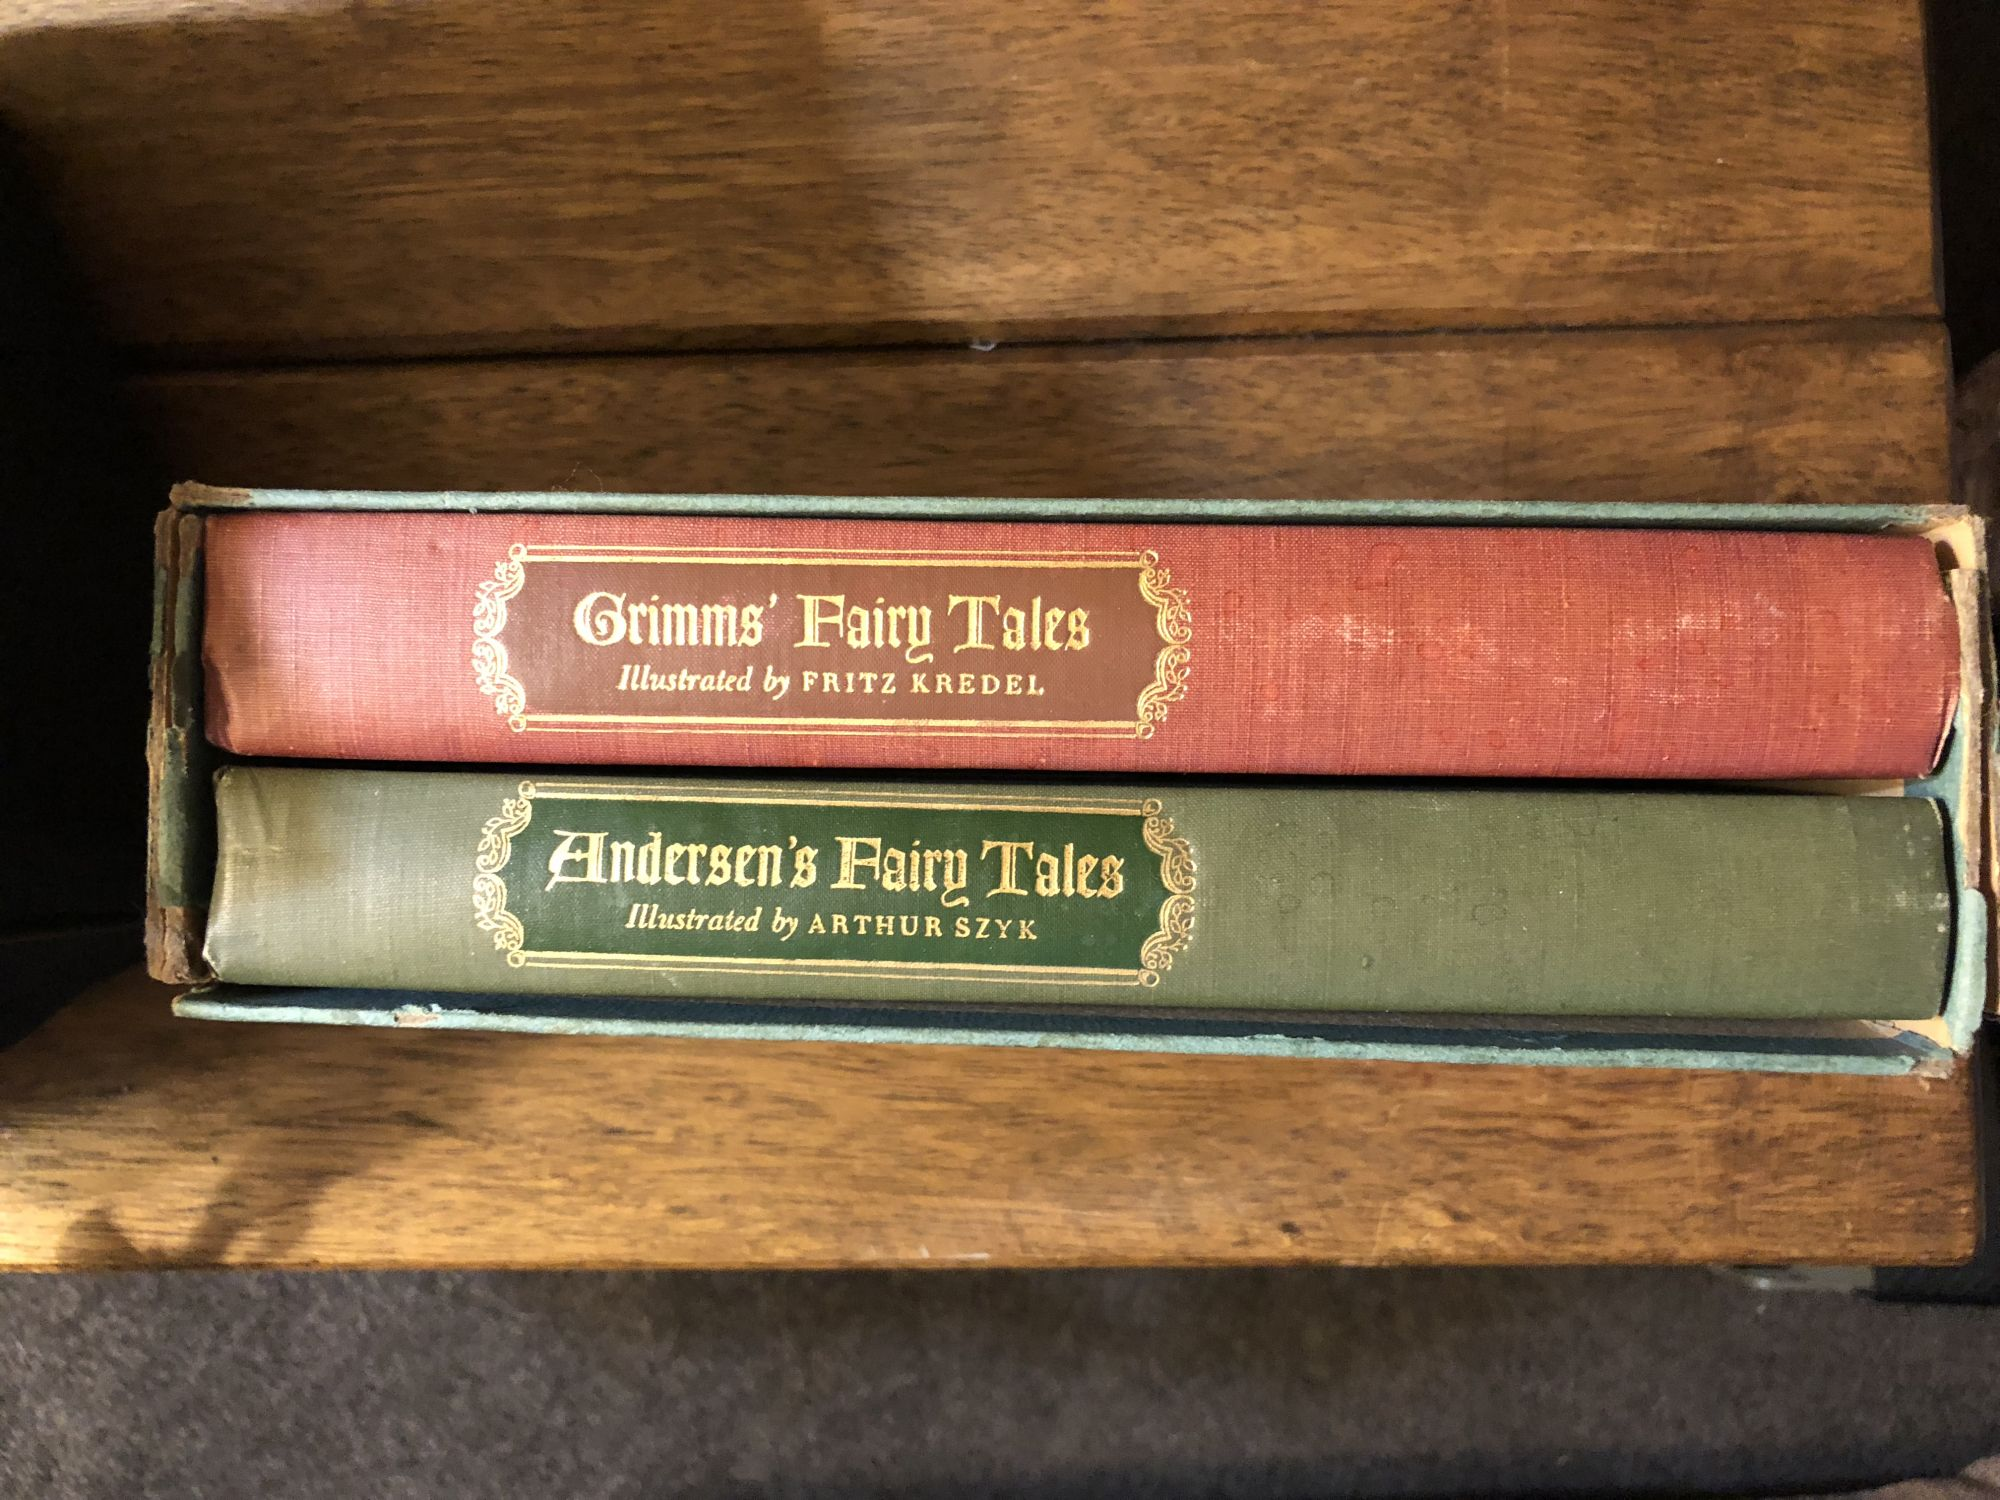 Grimms' Fairy Tales and Andersens' Fairy Tales